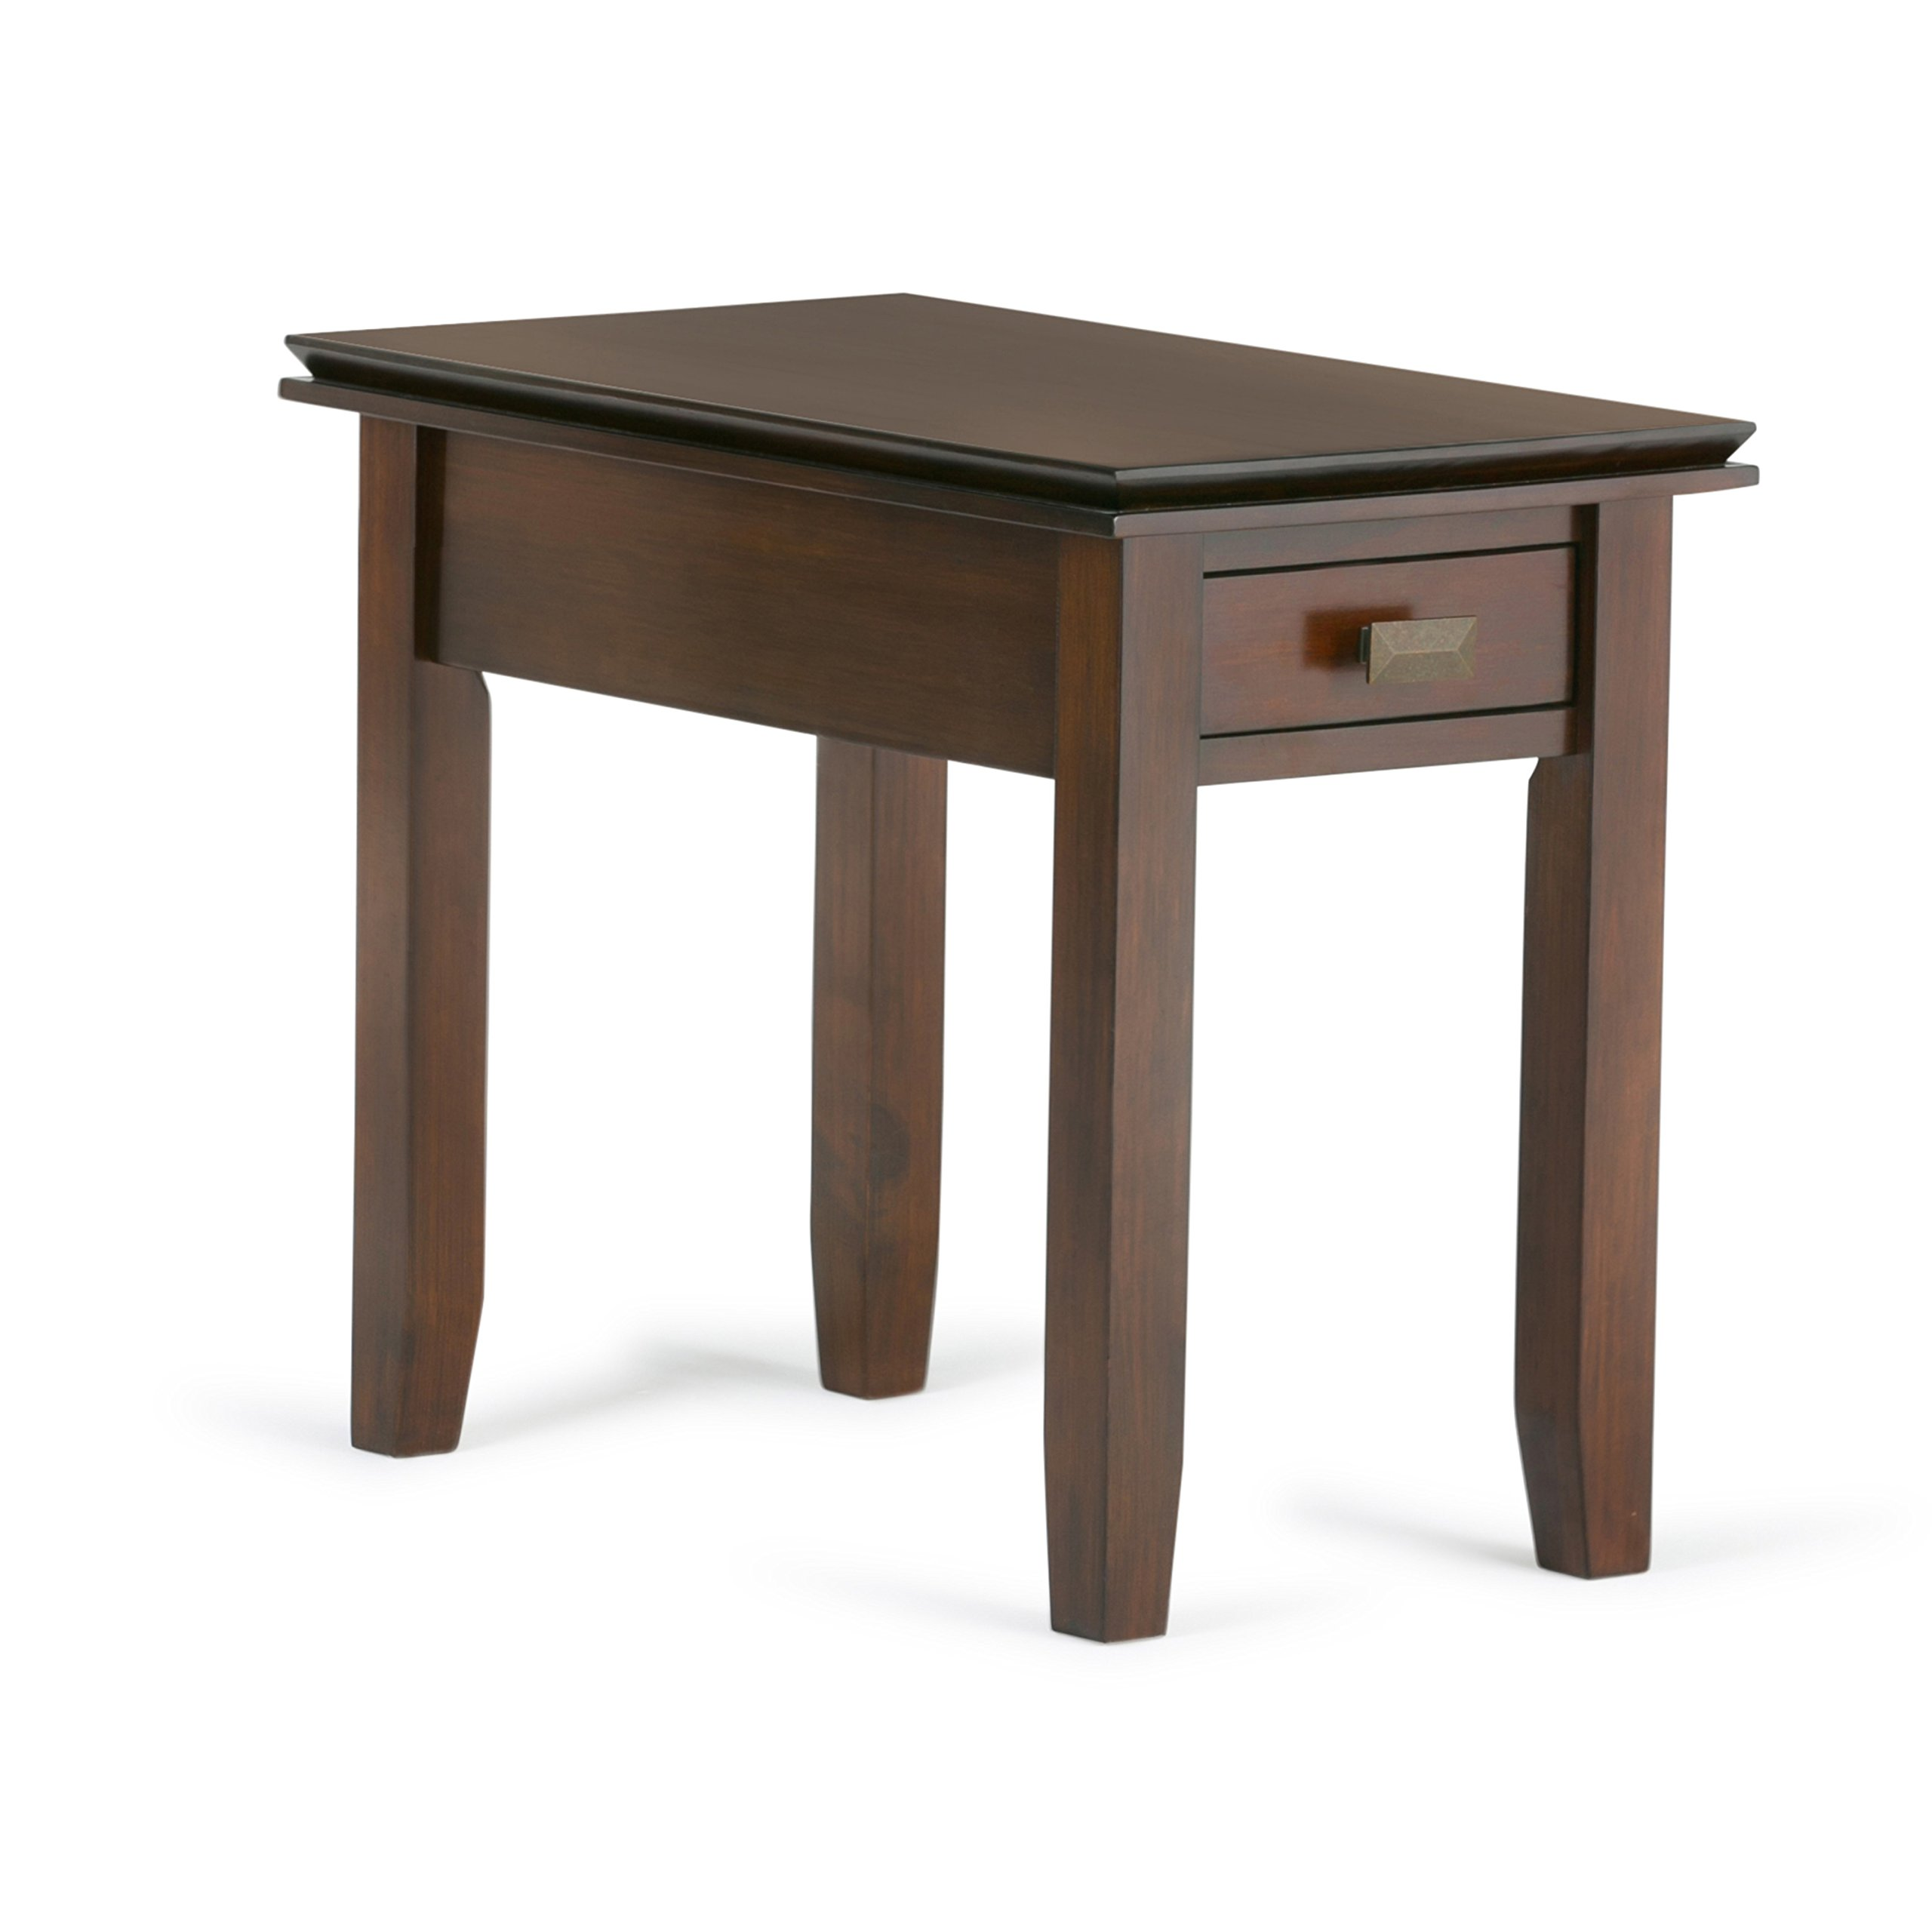 Simpli Home Artisan Solid Wood Narrow Side Table, Medium Auburn Brown